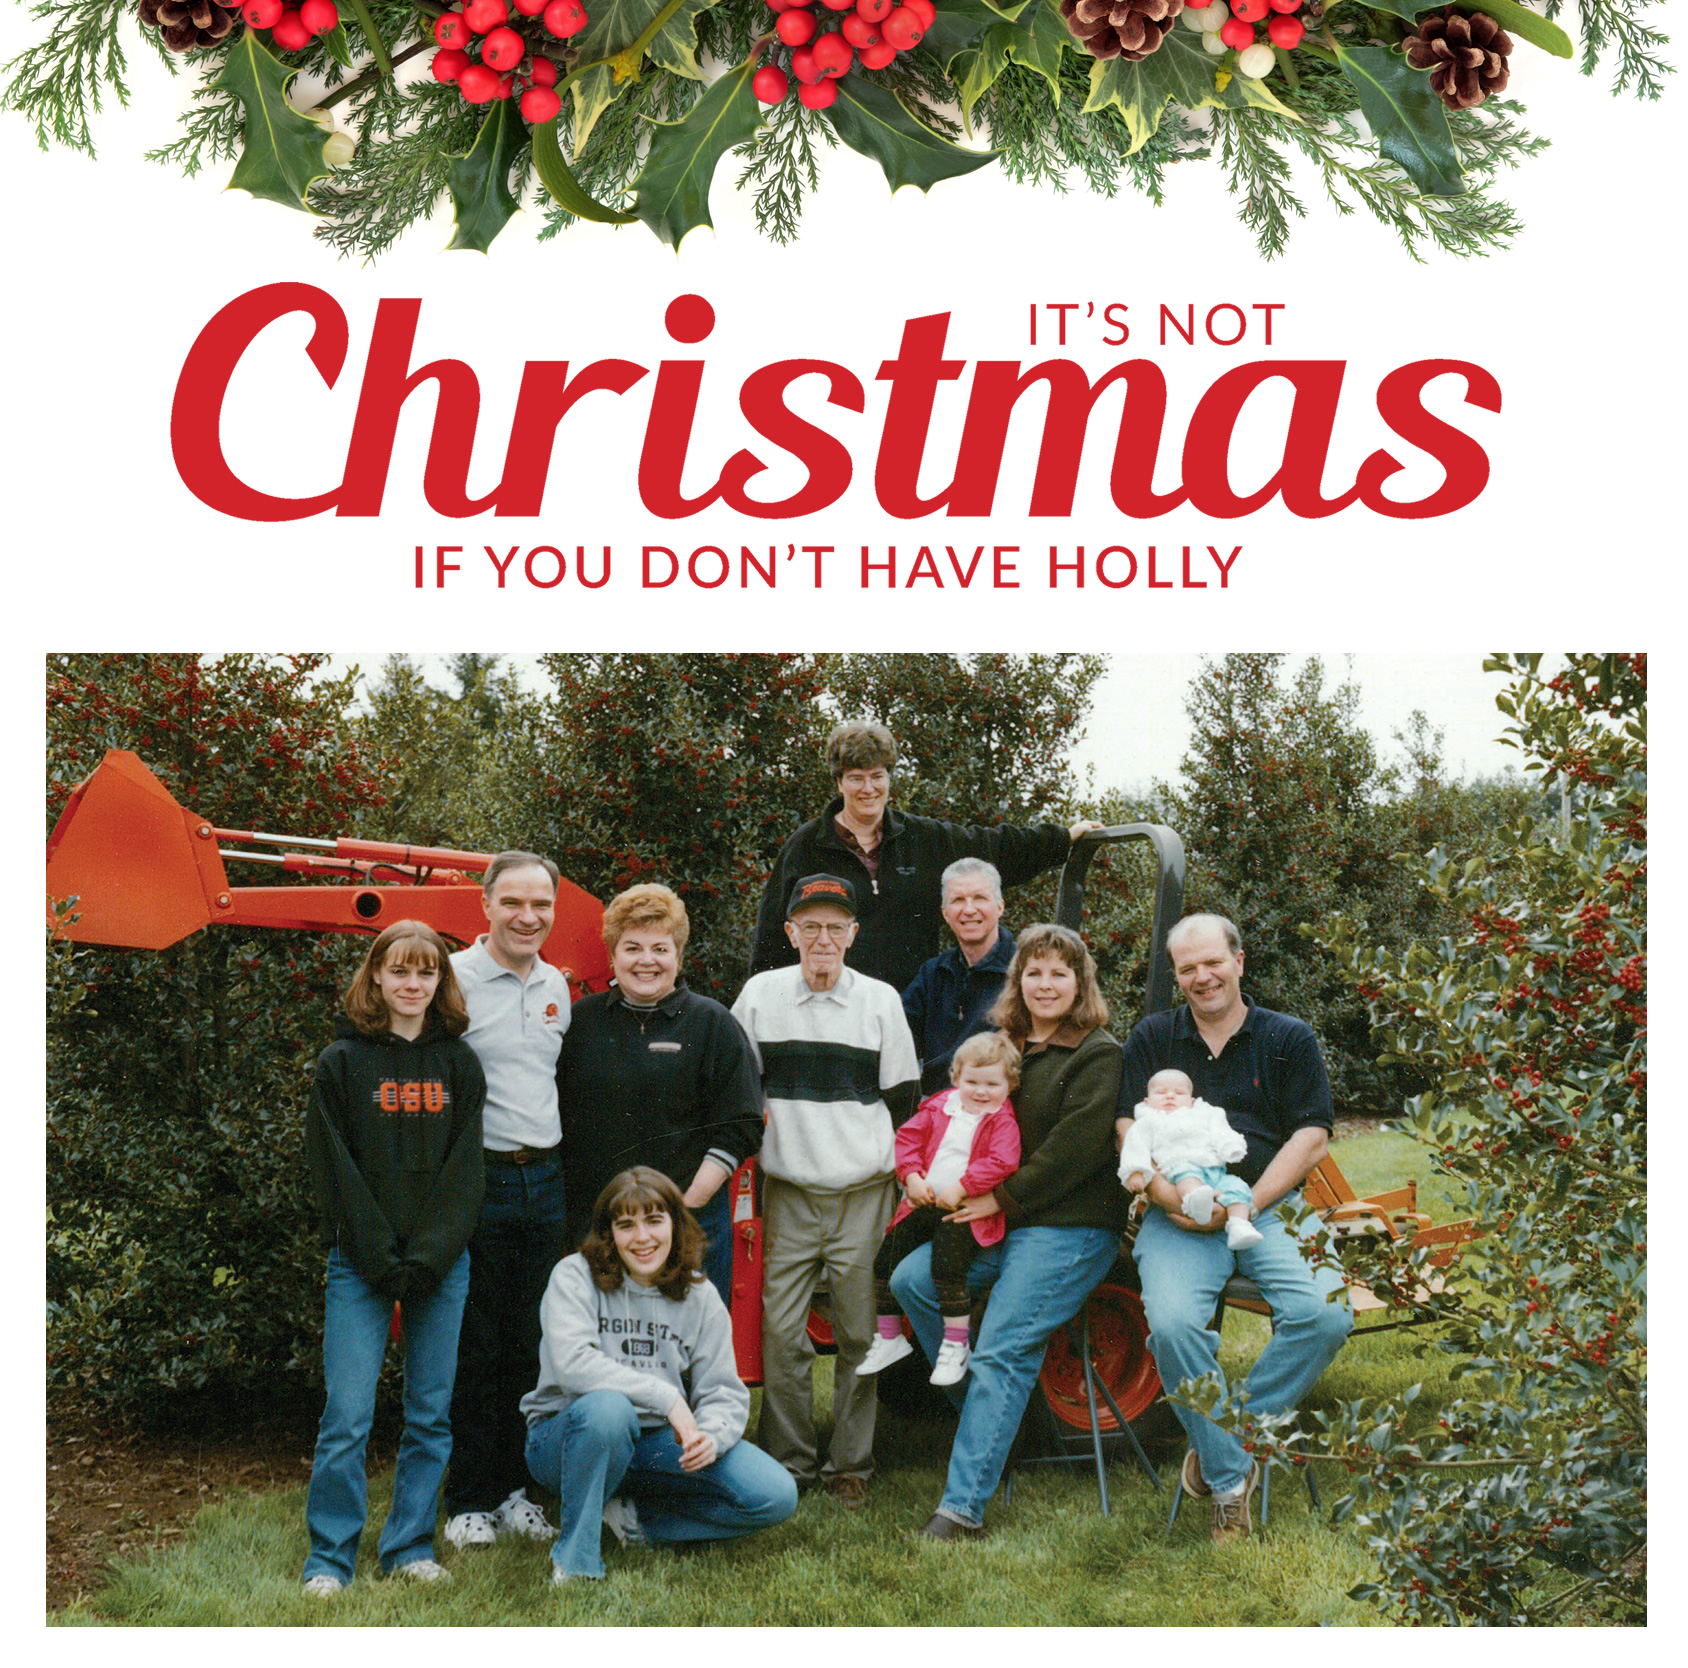 It's Not Christmas If You Don't Have Holly - Fresh holly used for Christmas Garlands and Holiday Wreaths